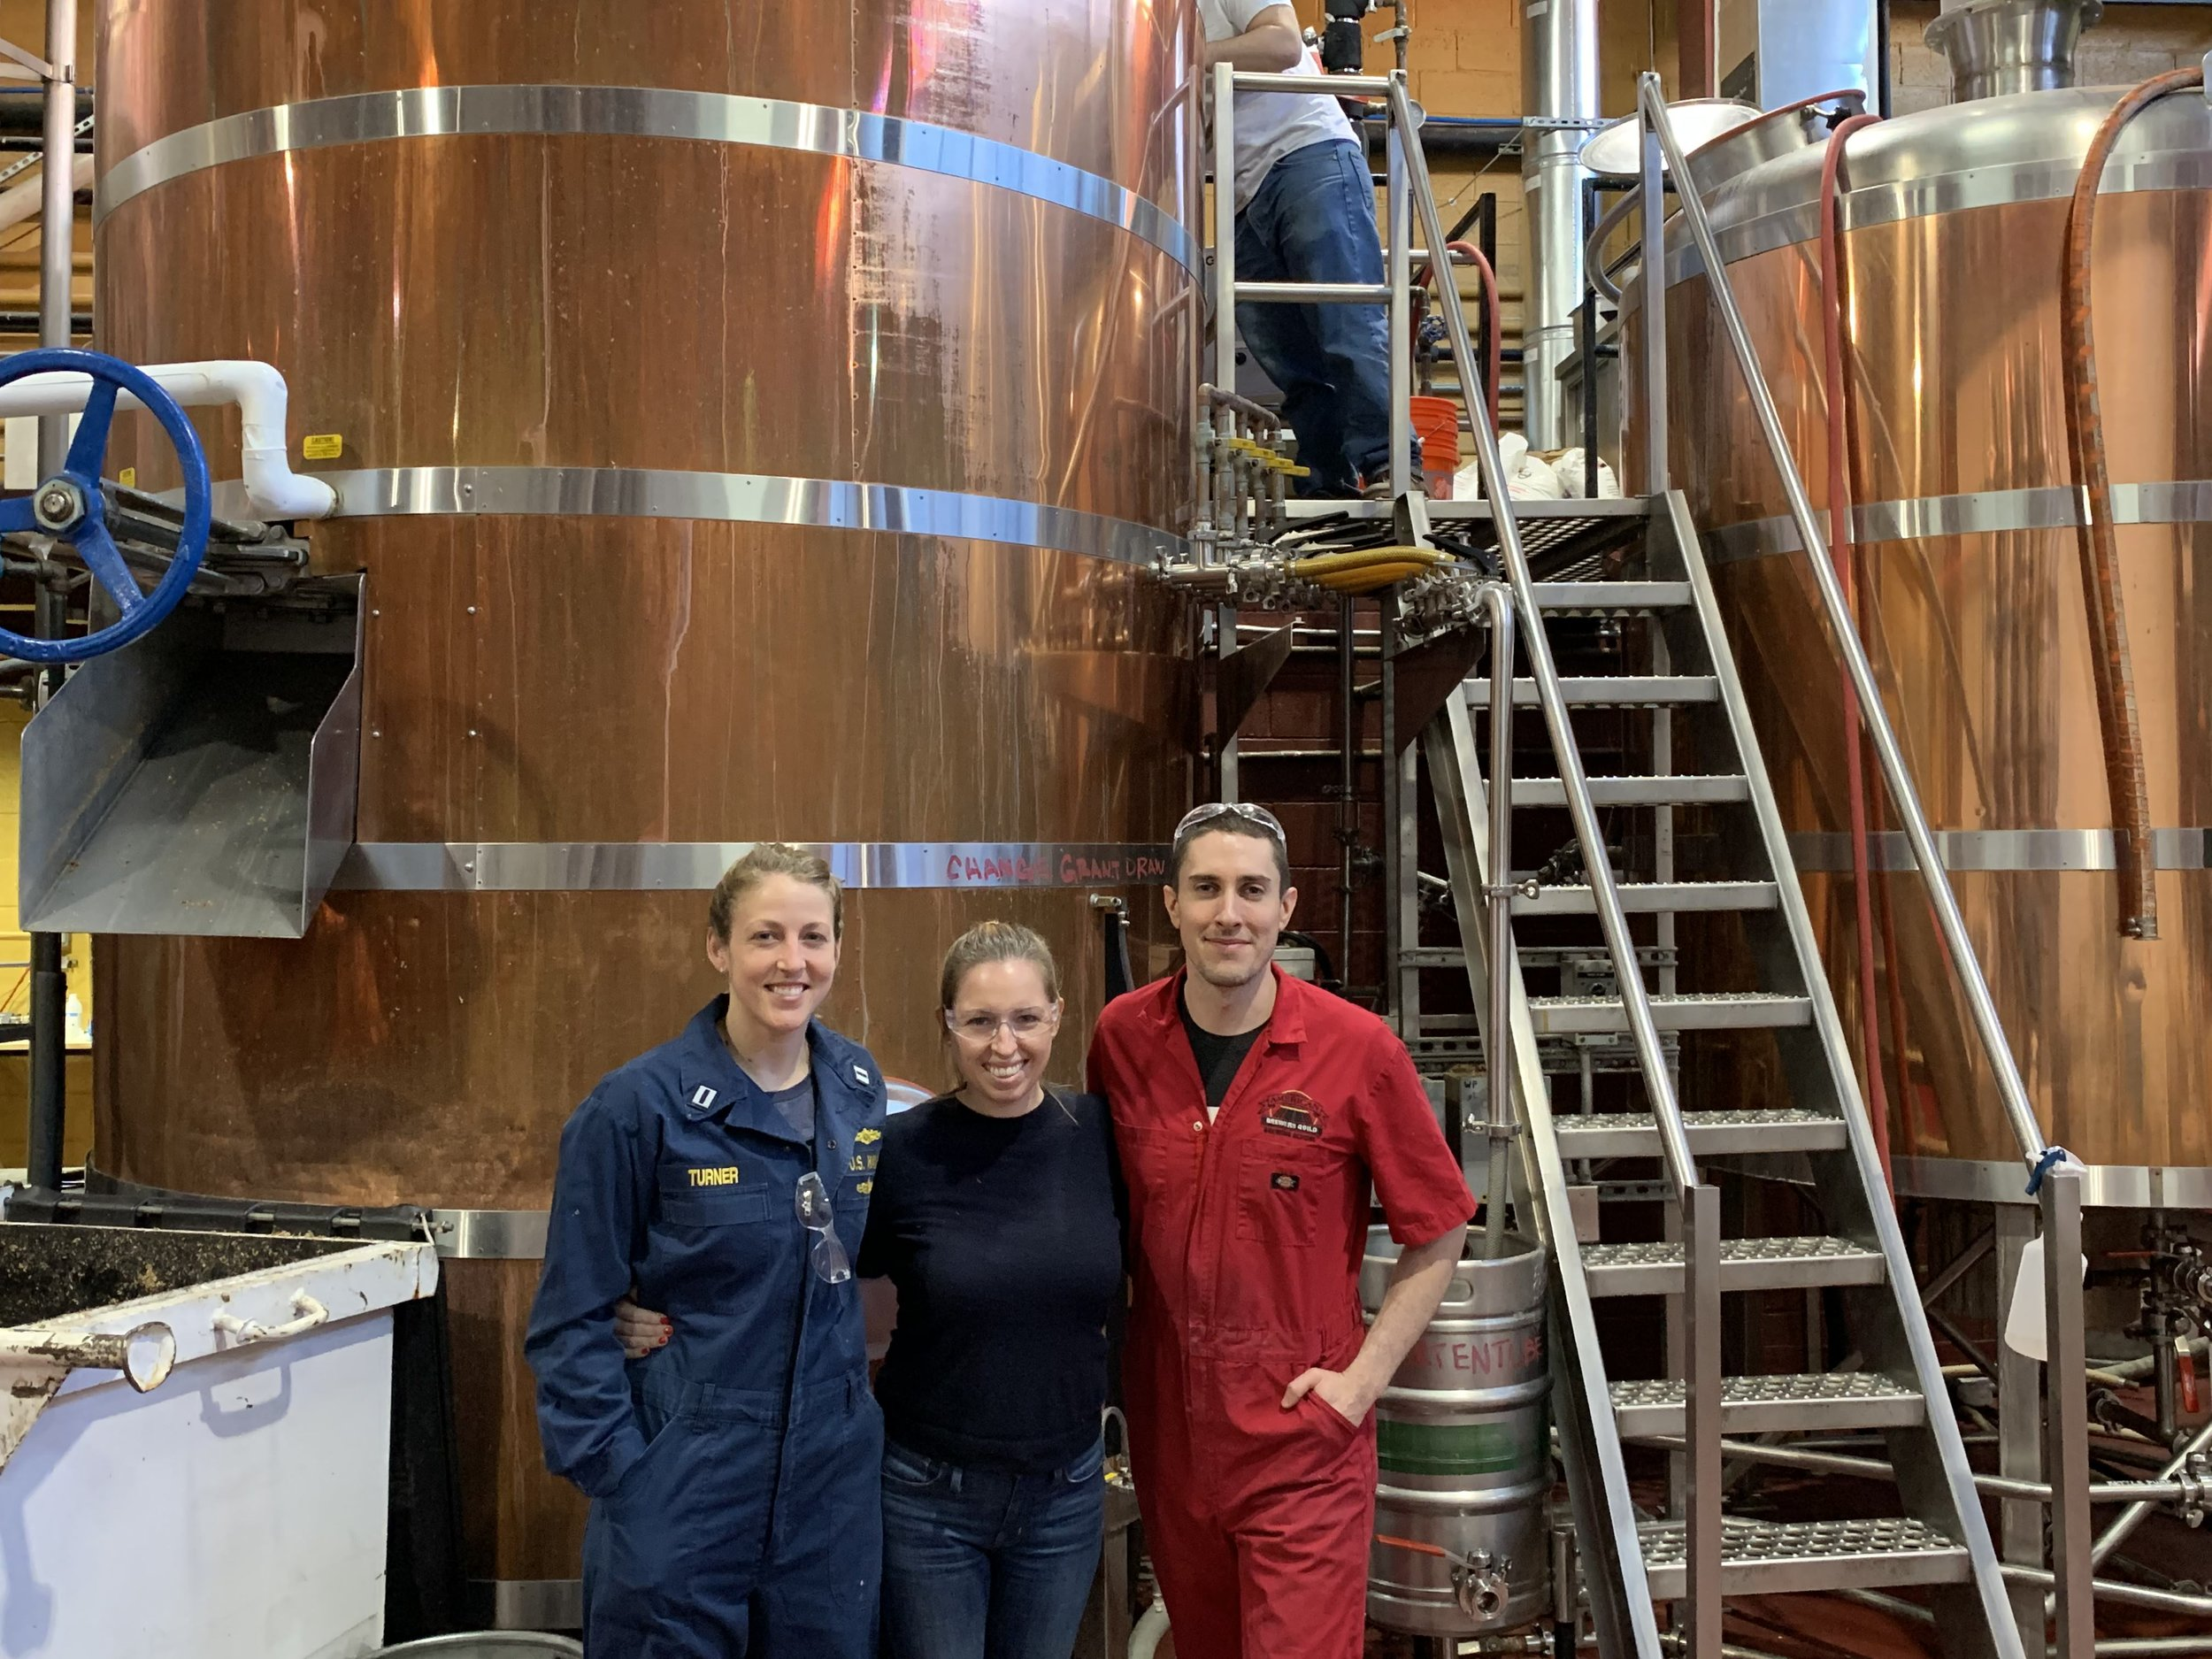 LeAnn, Tara, and Johnny (Head Brewer) on our first Brew Day!